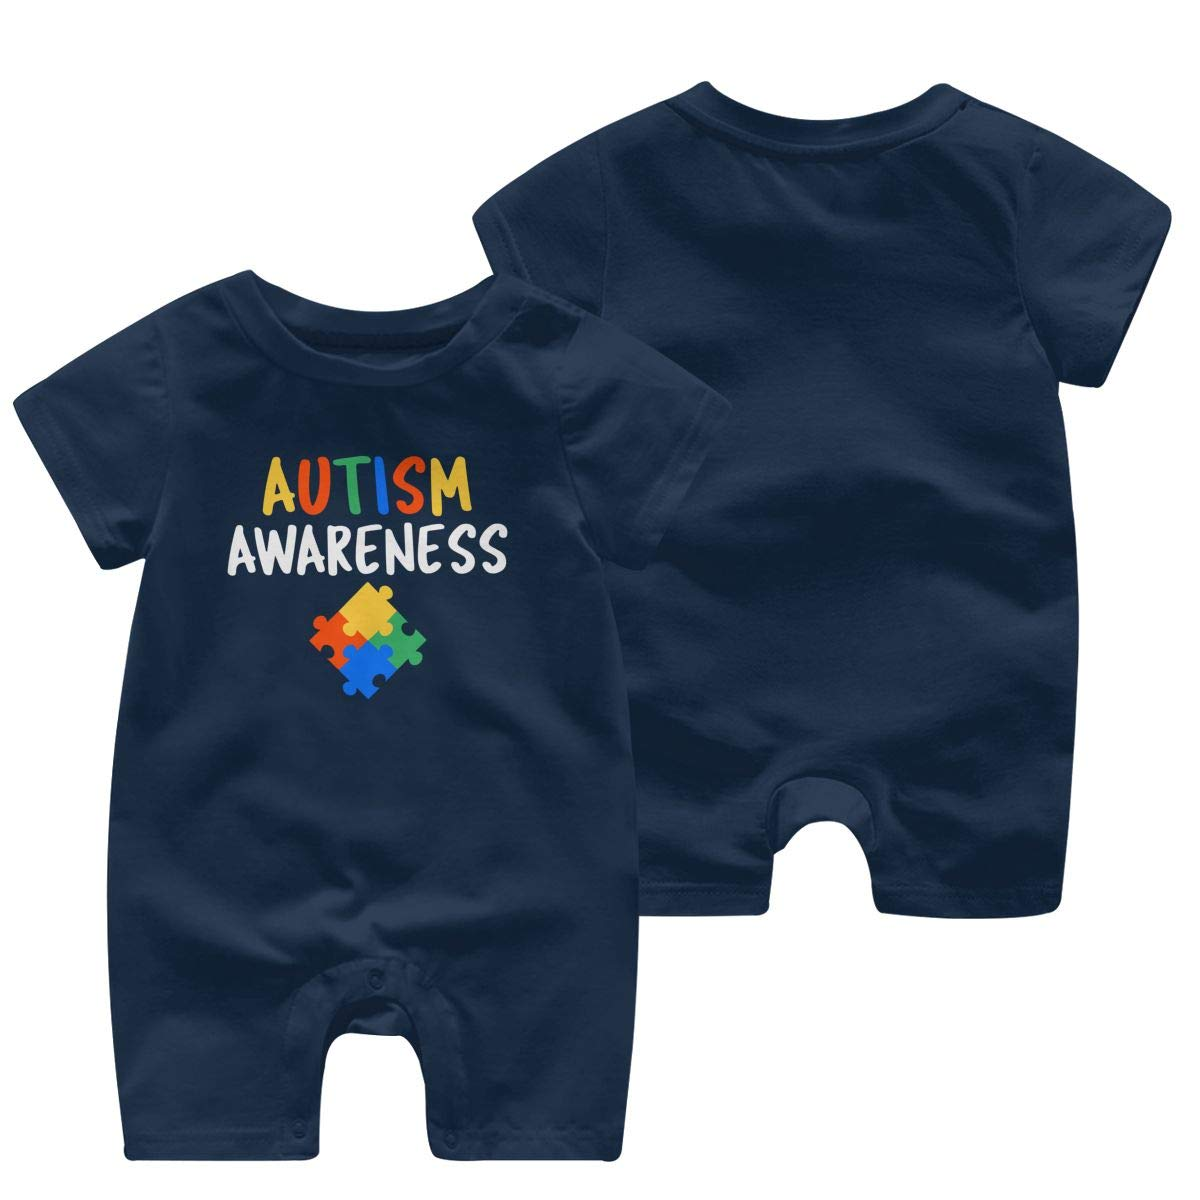 A1BY-5US Baby Infant Toddler Bodysuits Autism Awareness Cotton Short Sleeve Jumpsuit